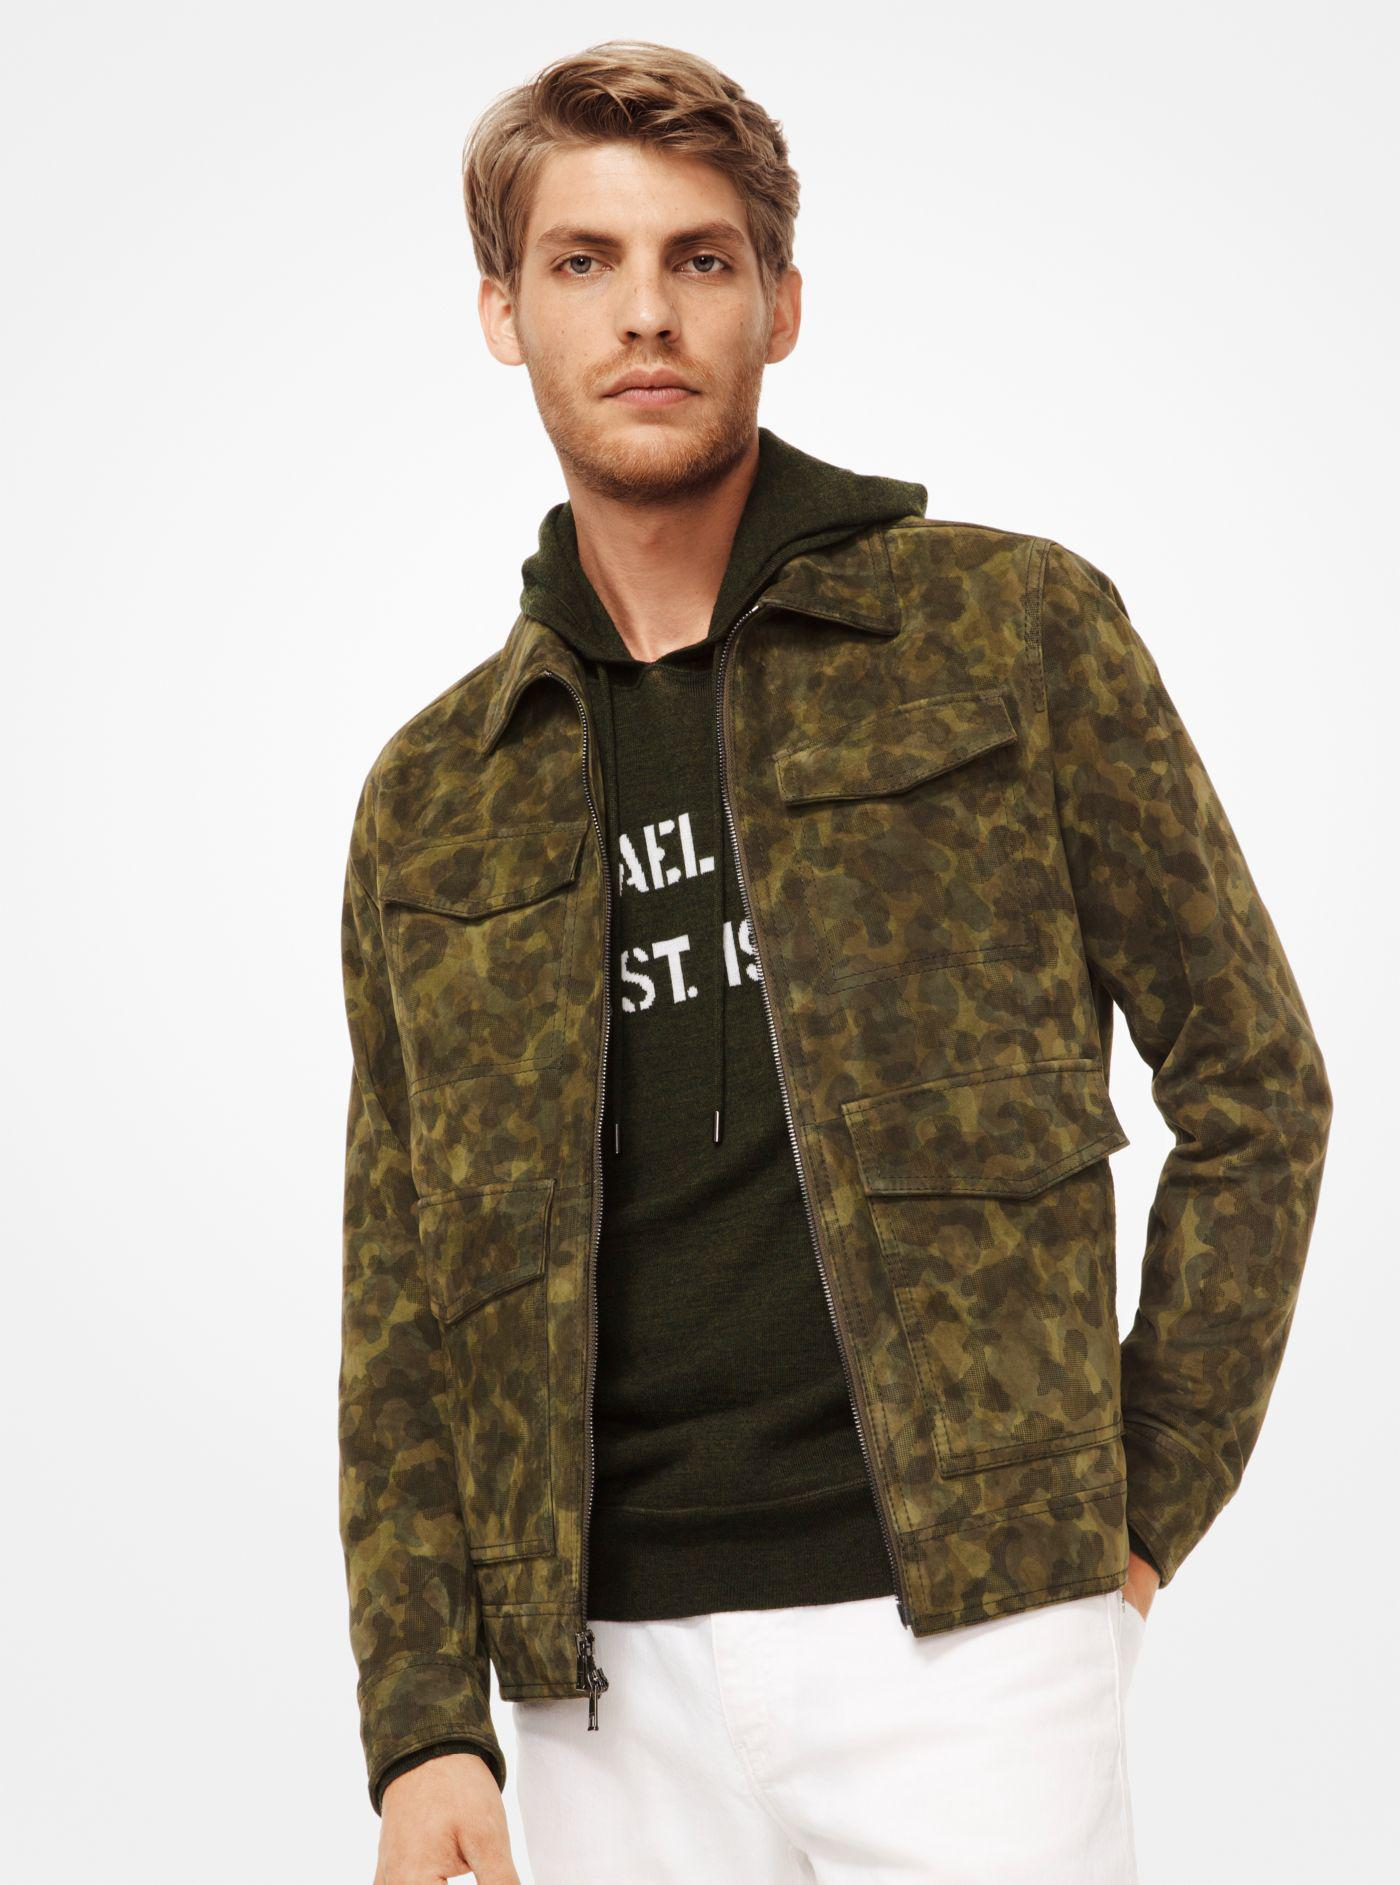 f4793d4ed3c2 Michael Kors Camouflage Suede Utility Jacket in Green for Men - Lyst